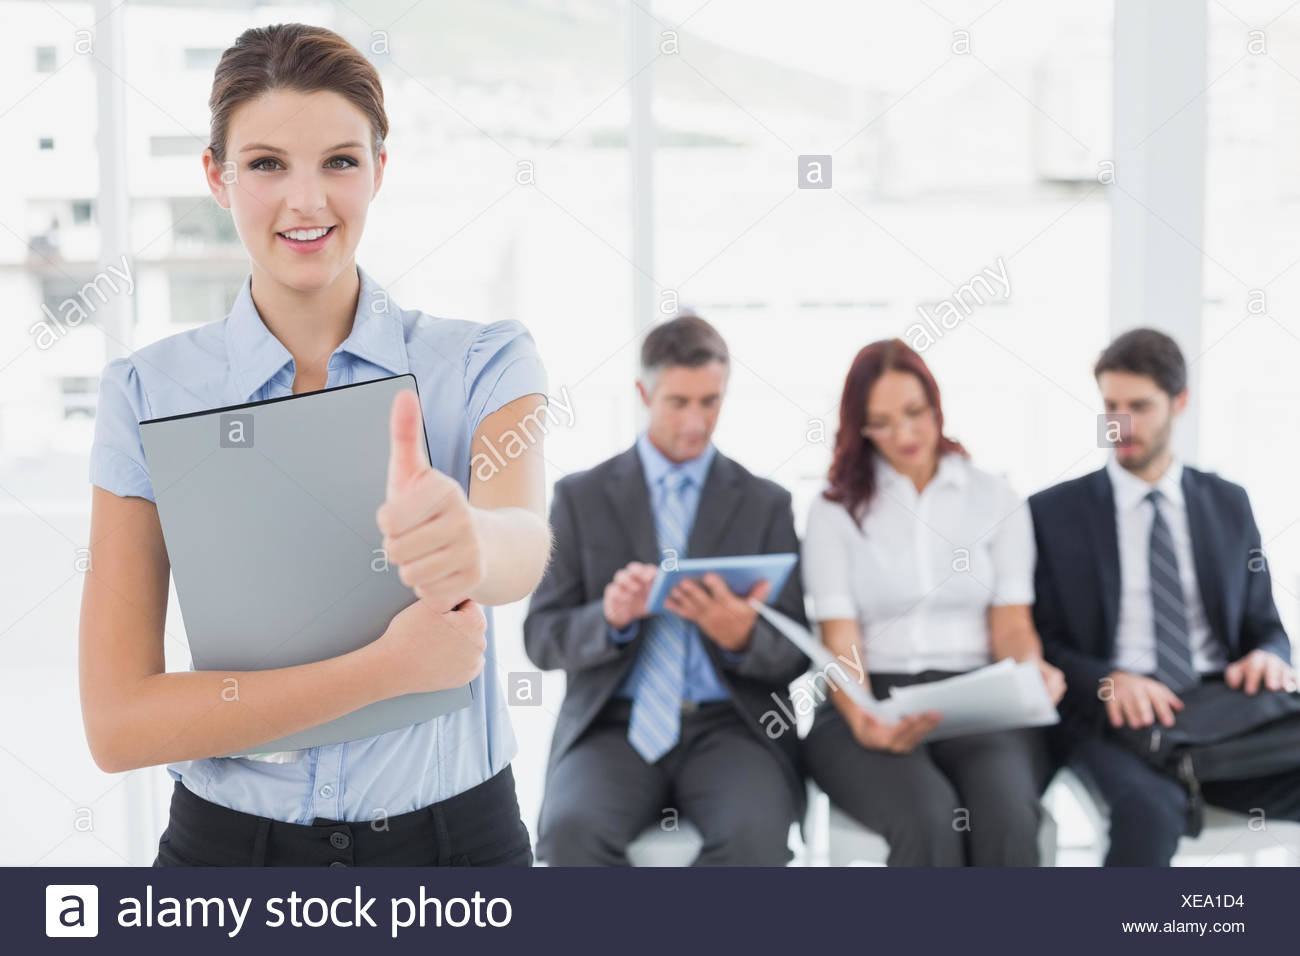 Business woman offering a handshake - Stock Image